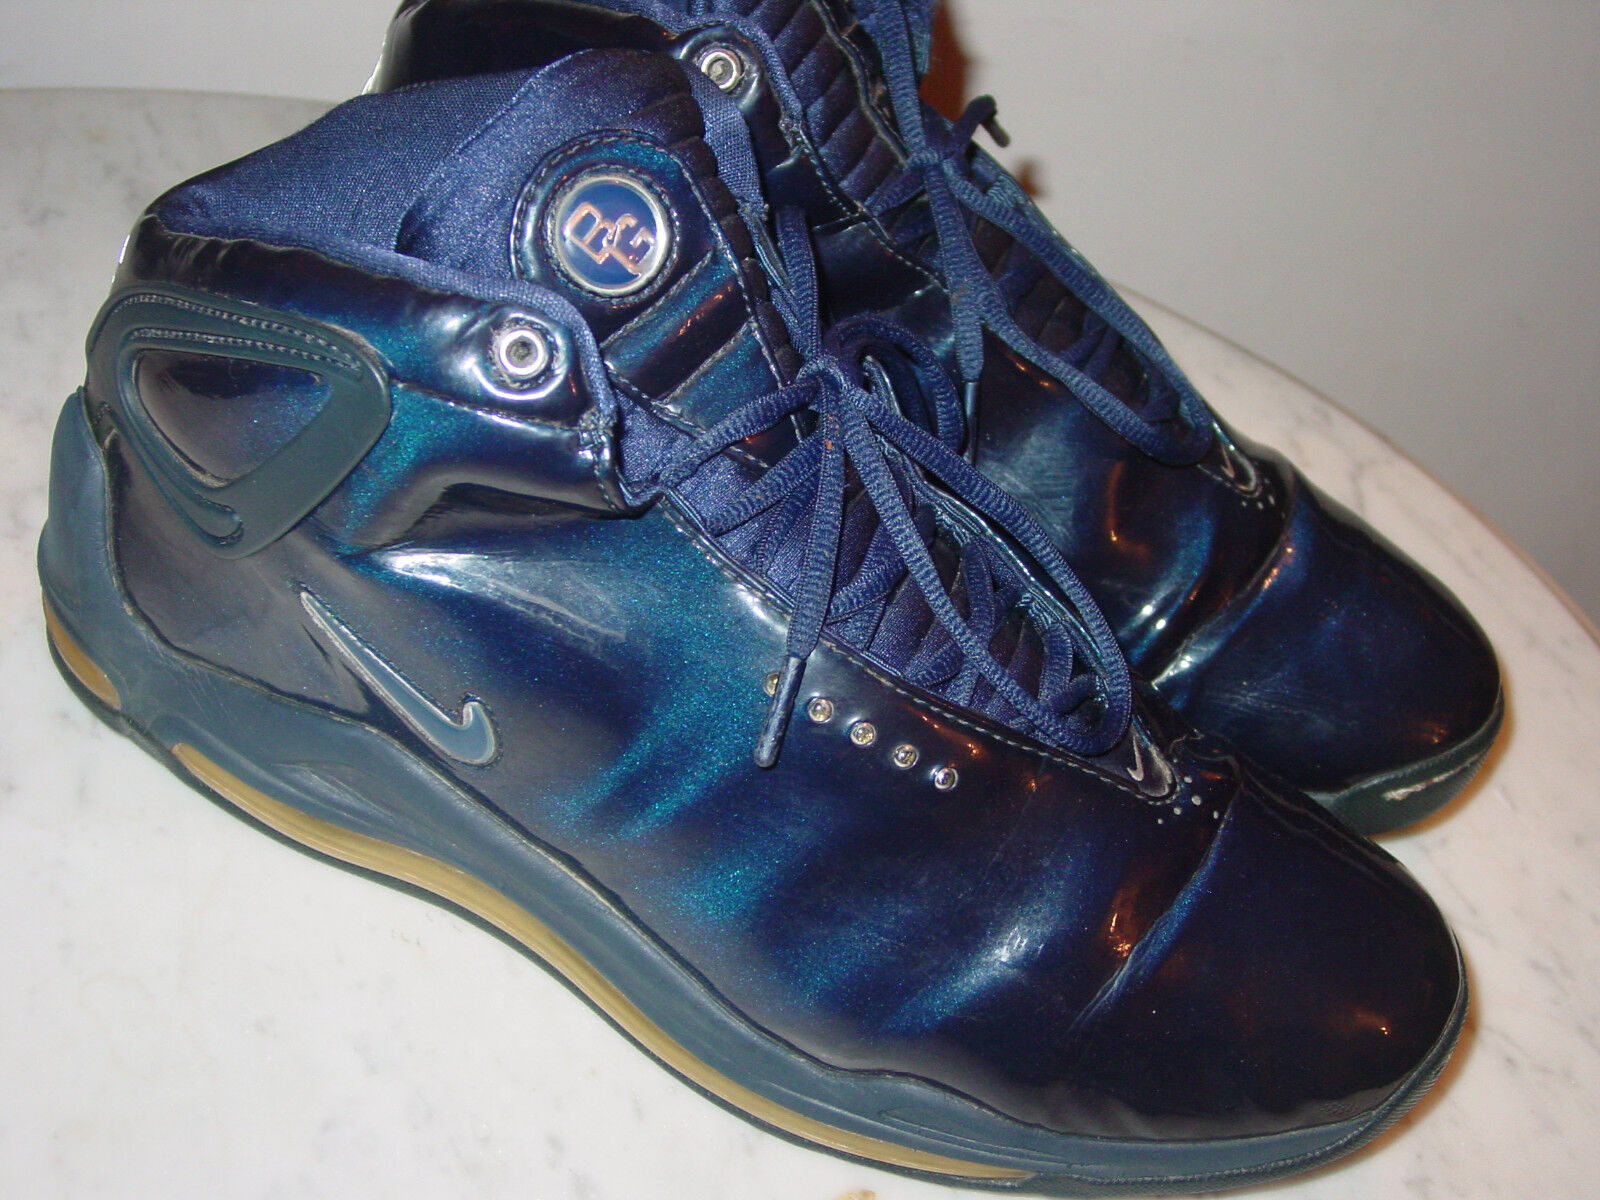 2002 Nike Air Max Shoes! Elite Battlegrounds Mid Navy/Silver Shoes! Max Size 14 Sold As Is! abd1bd